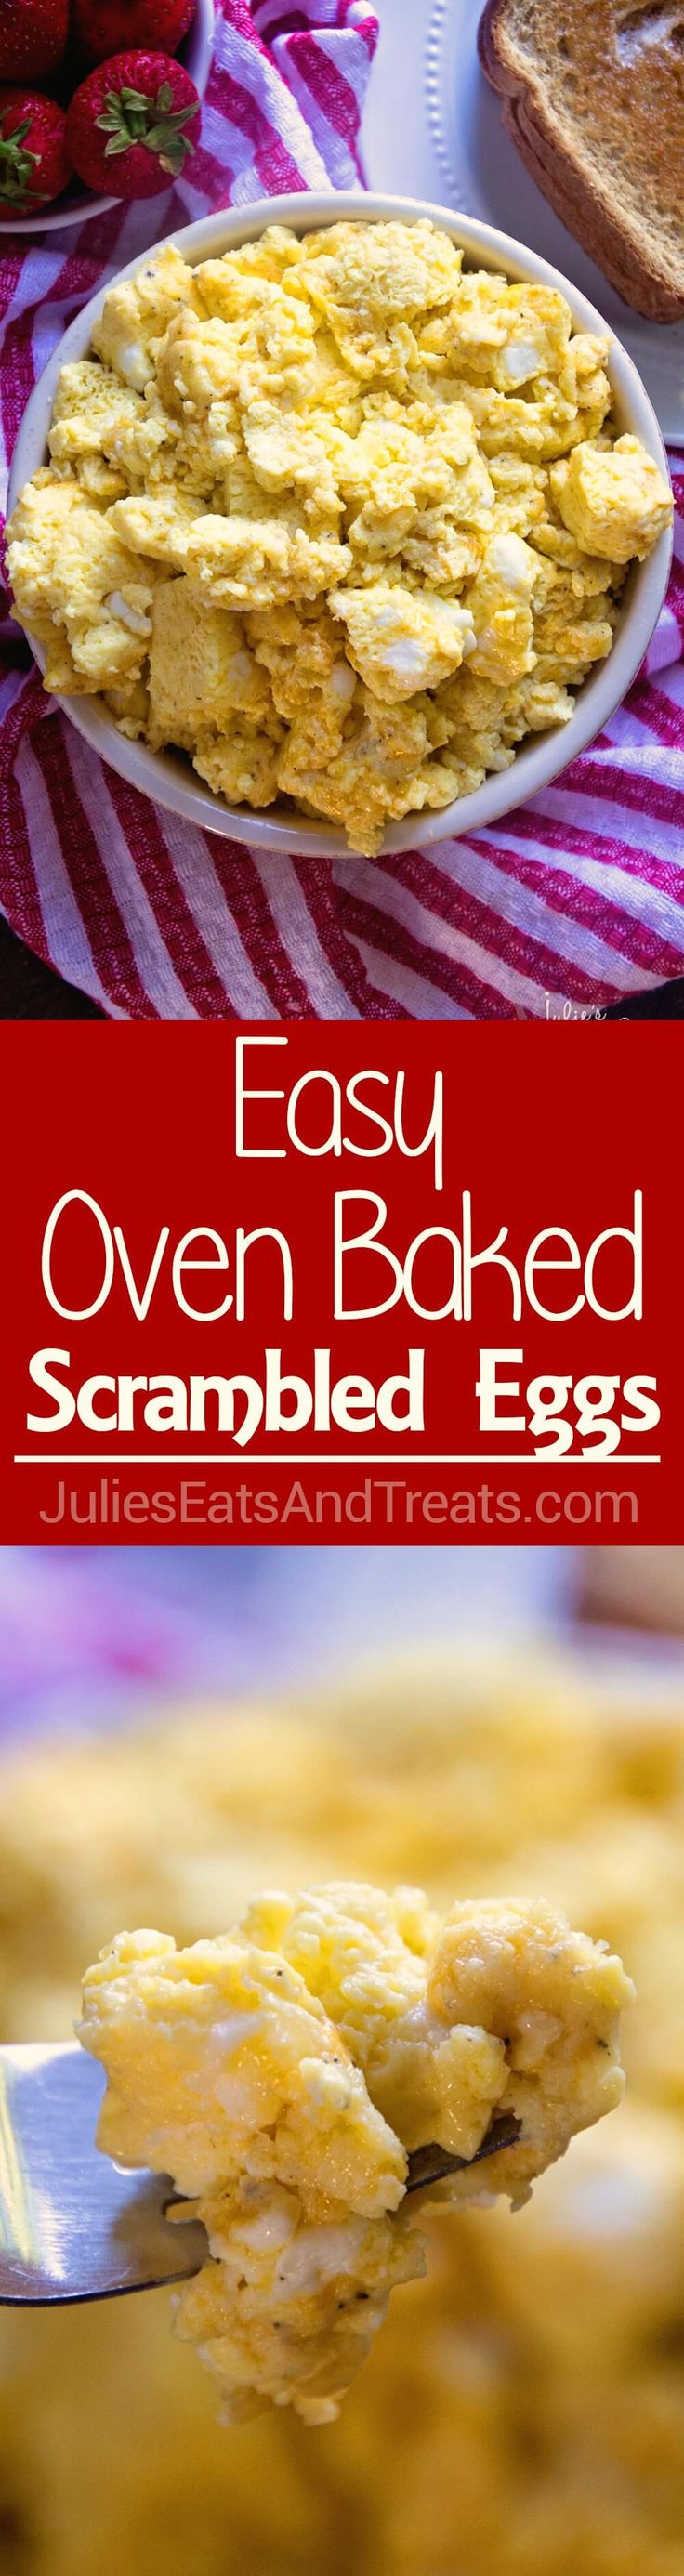 Easy Oven Baked Scrambled Eggs ~ Light, Fluffy, Perfect Scrambled Eggs with Cheese! Baked to Perfection in Your Oven!  via @julieseats